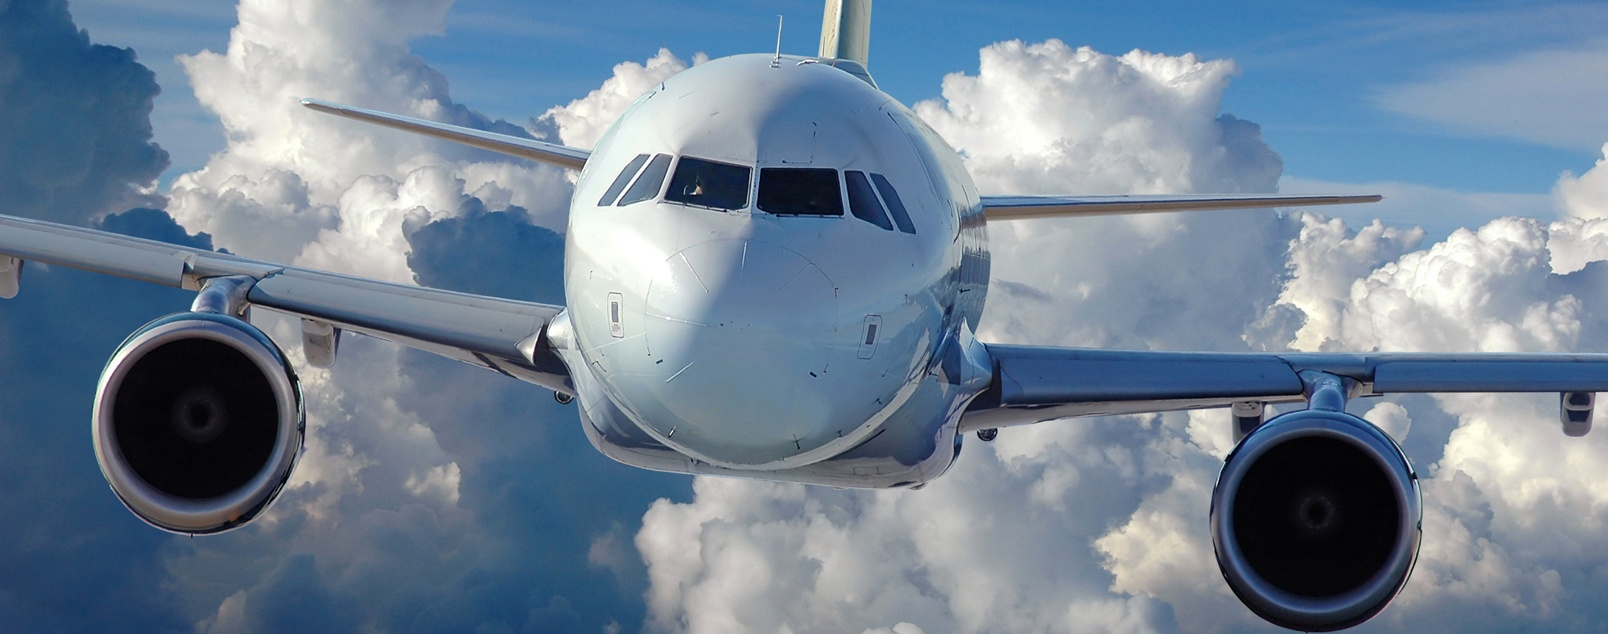 Insight essential guide to aviation safety mangement system